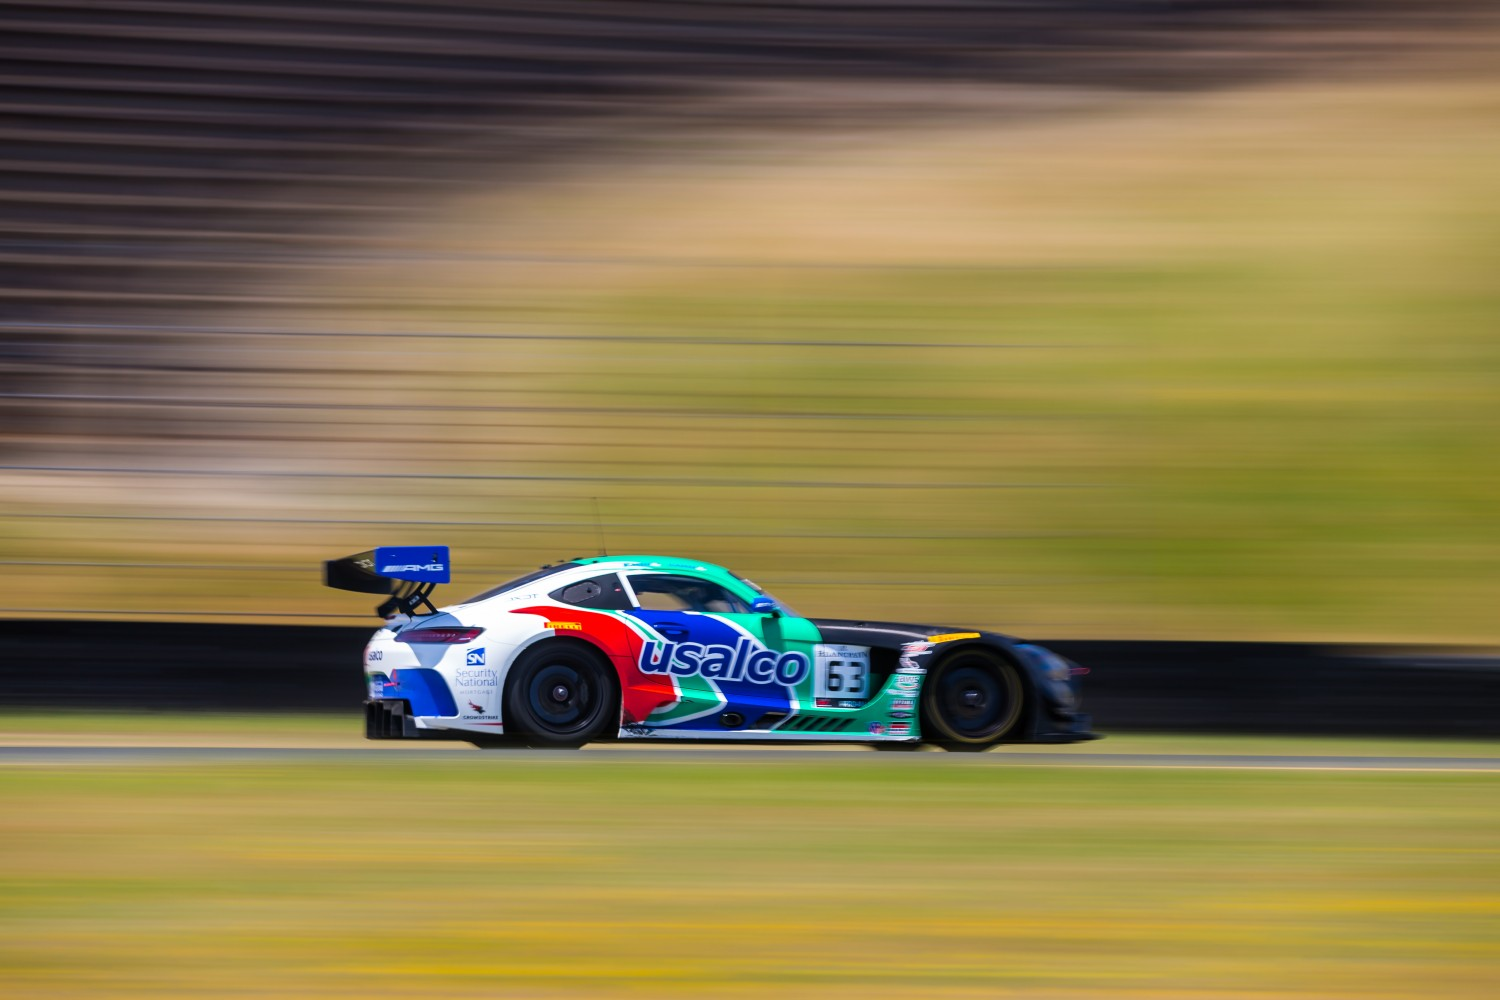 #63 Mercedes-AMG GT3 of David Askew and Mike Skeen   SRO at Sonoma Raceway, Sonoma CA | Fabian Lagunas/SRO